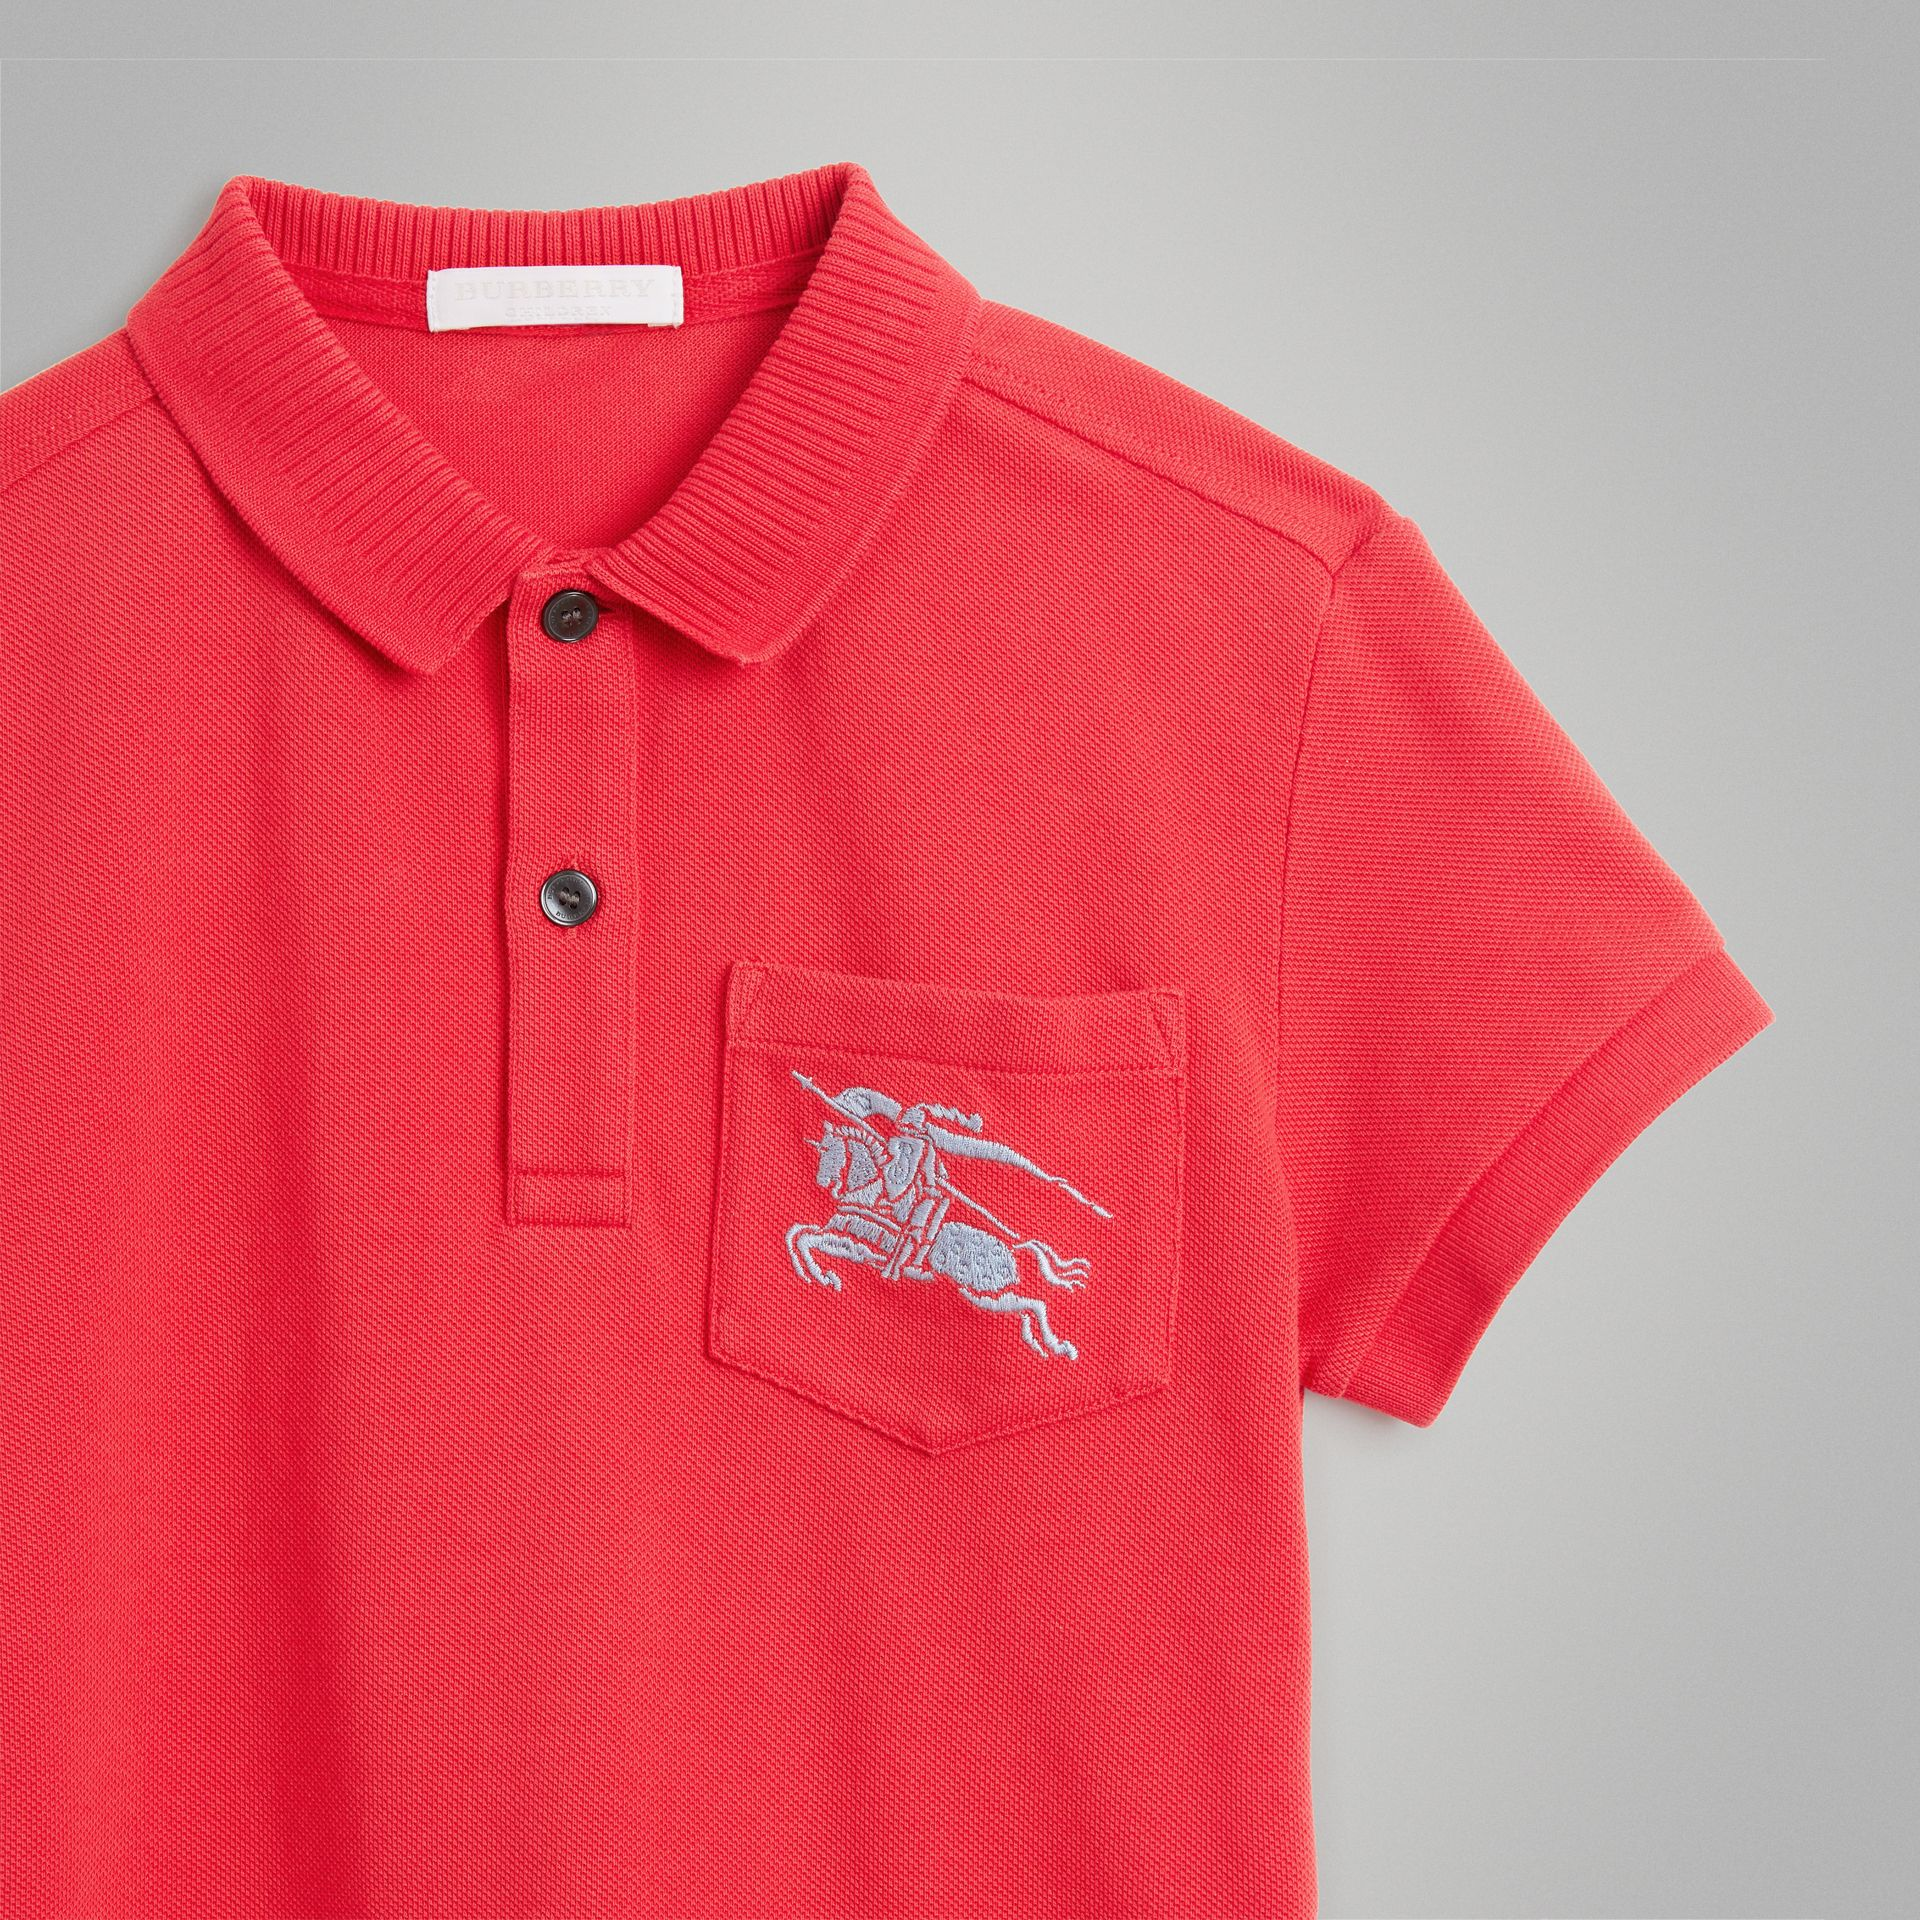 EKD Logo Cotton Piqué Polo Shirt in Bright Red | Burberry Australia - gallery image 4